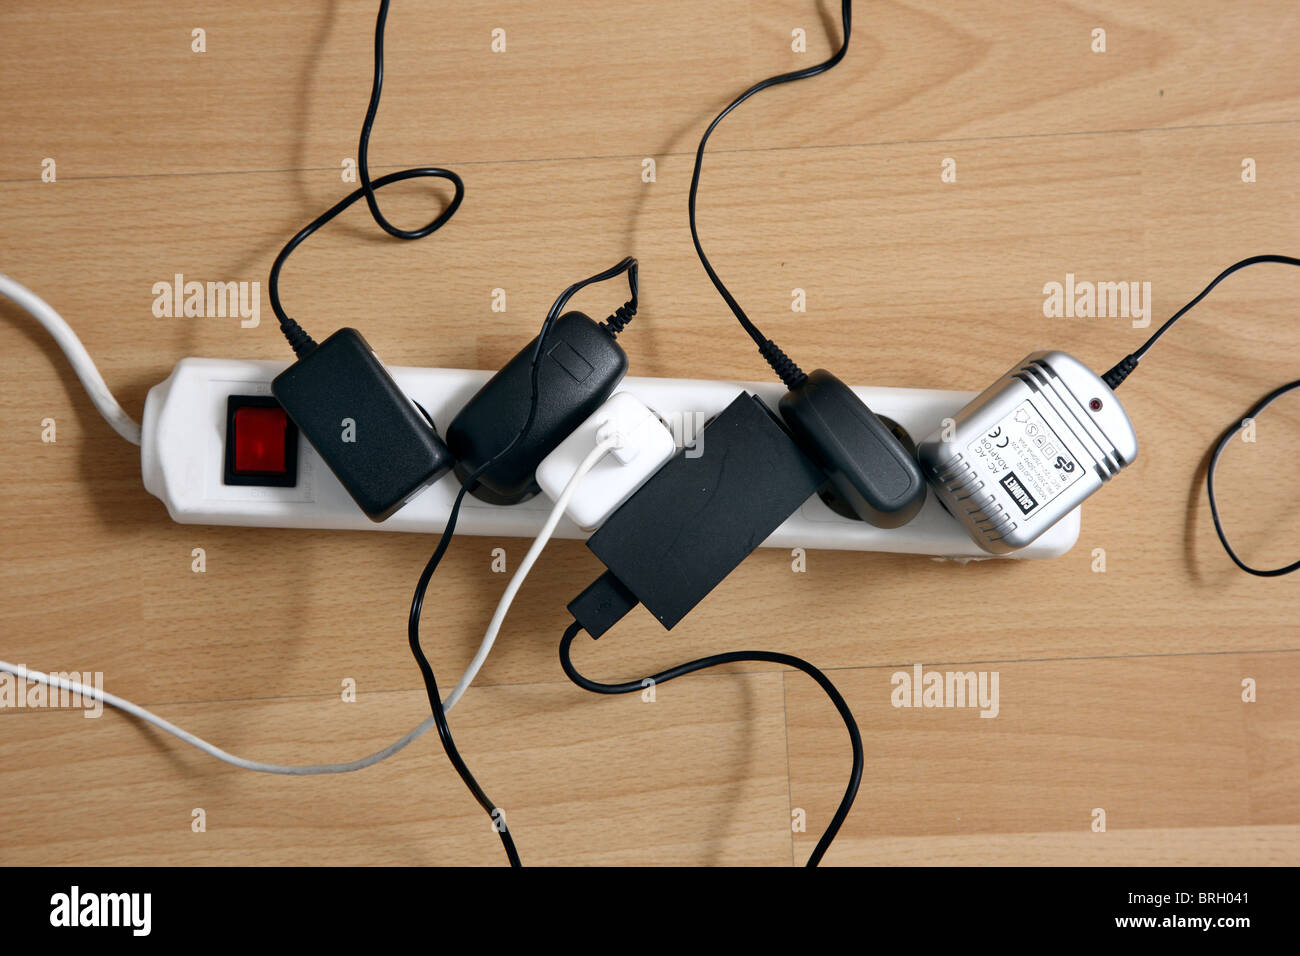 power supply circuit disconnected stock photos power supply rh alamy com Electric Power Socket Wiring Meter Socket Wiring